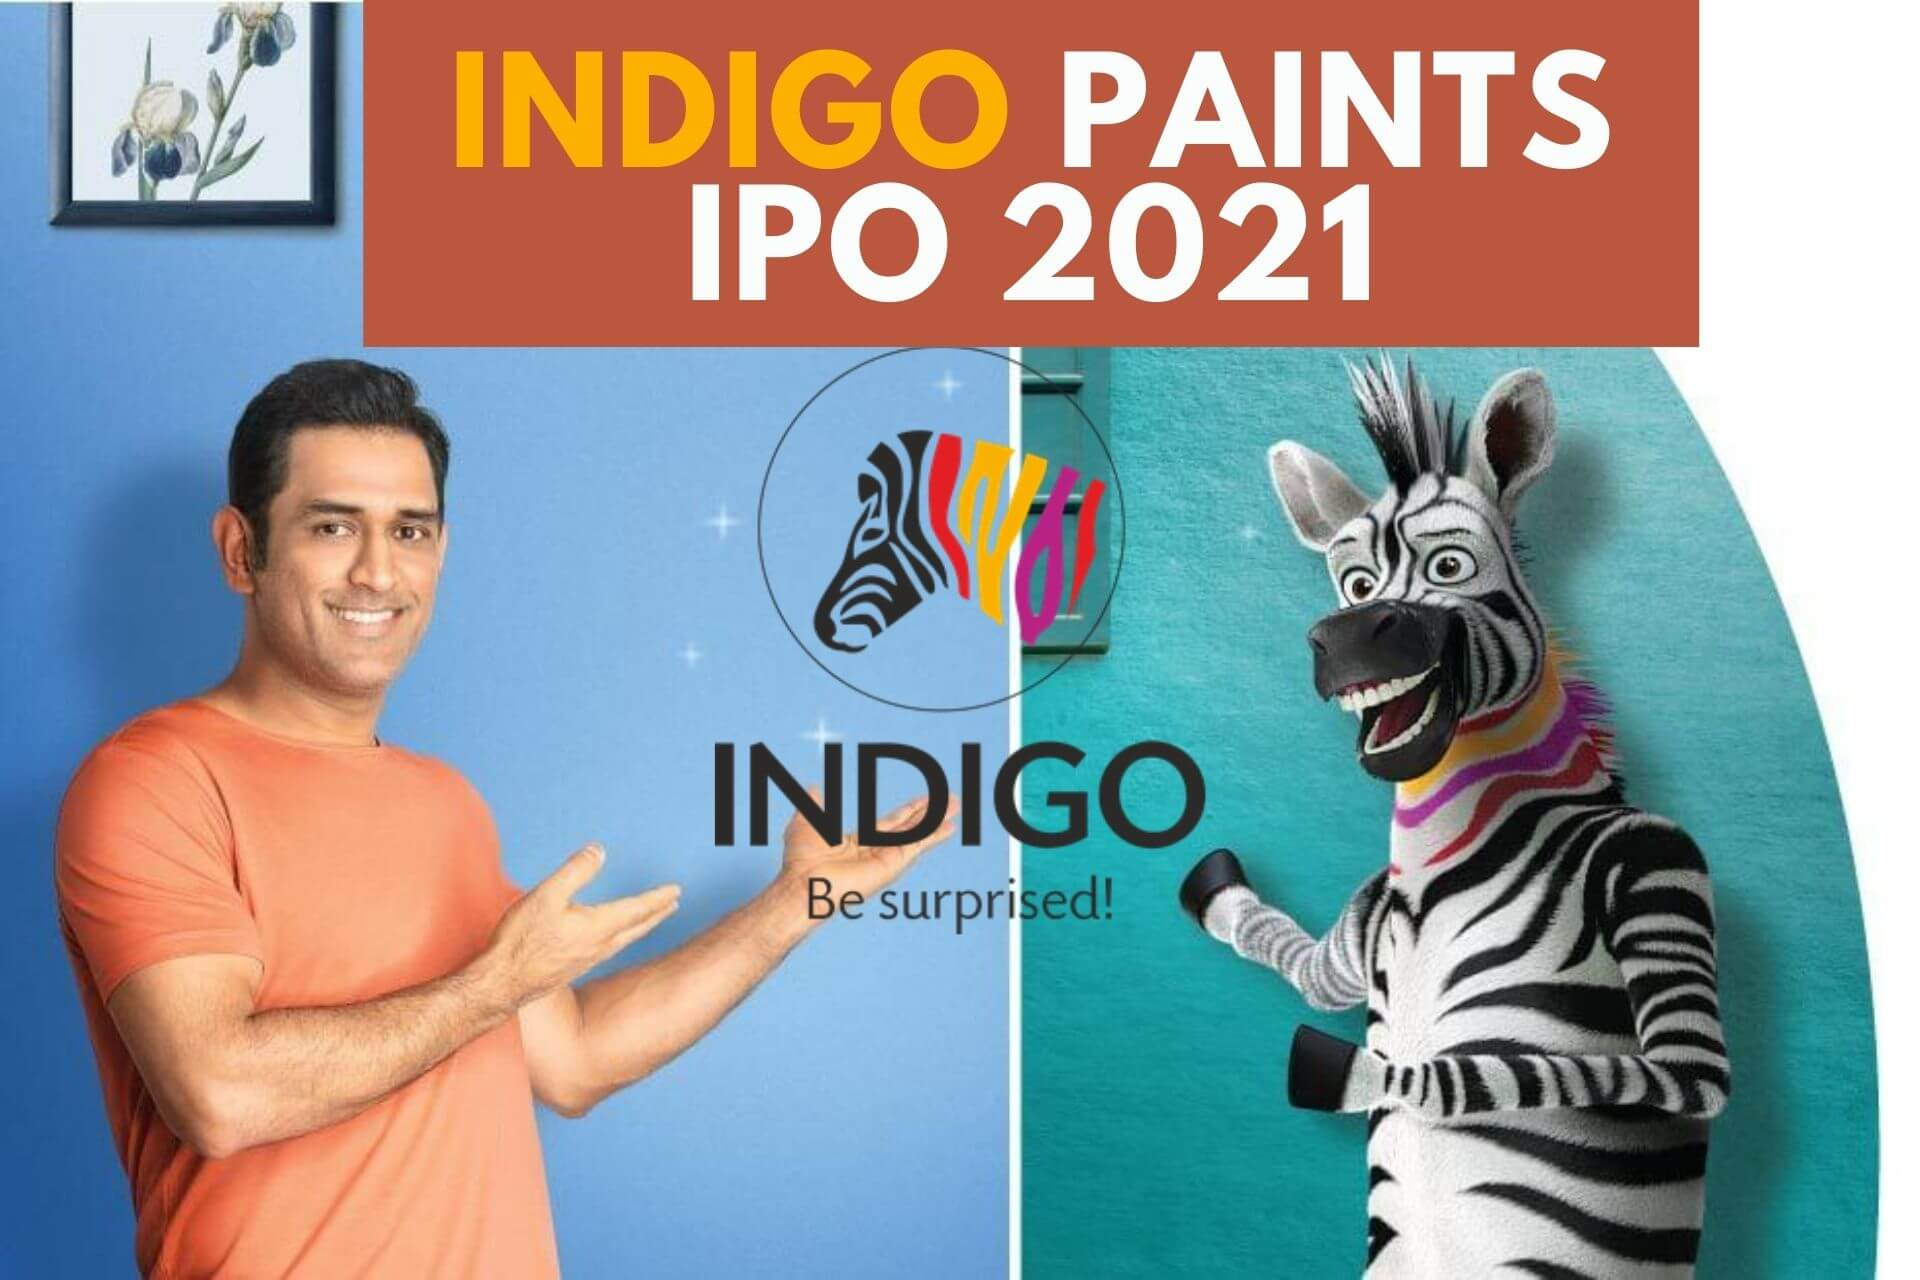 INDIGO PAINTS IPO Review 2021